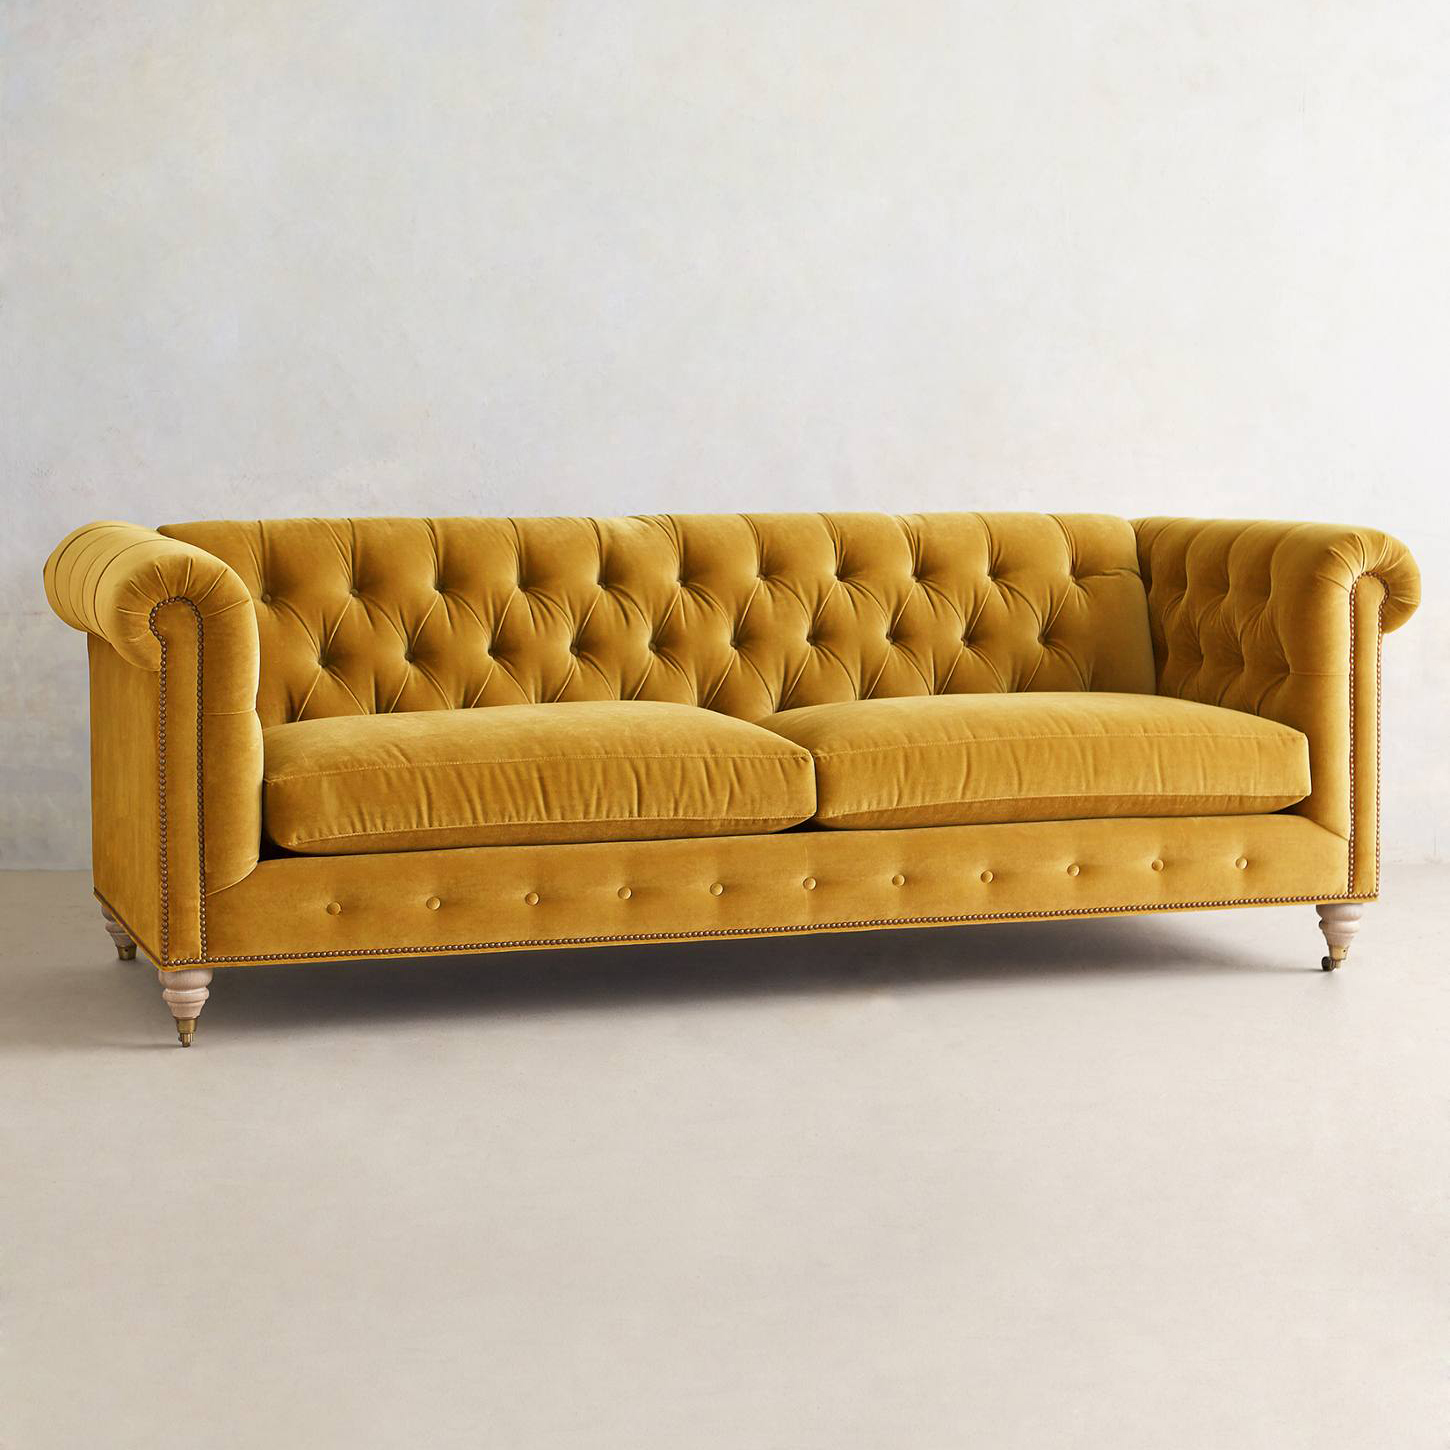 Style Classic: 12 Charming Chesterfield Sofas for Every Budget ...